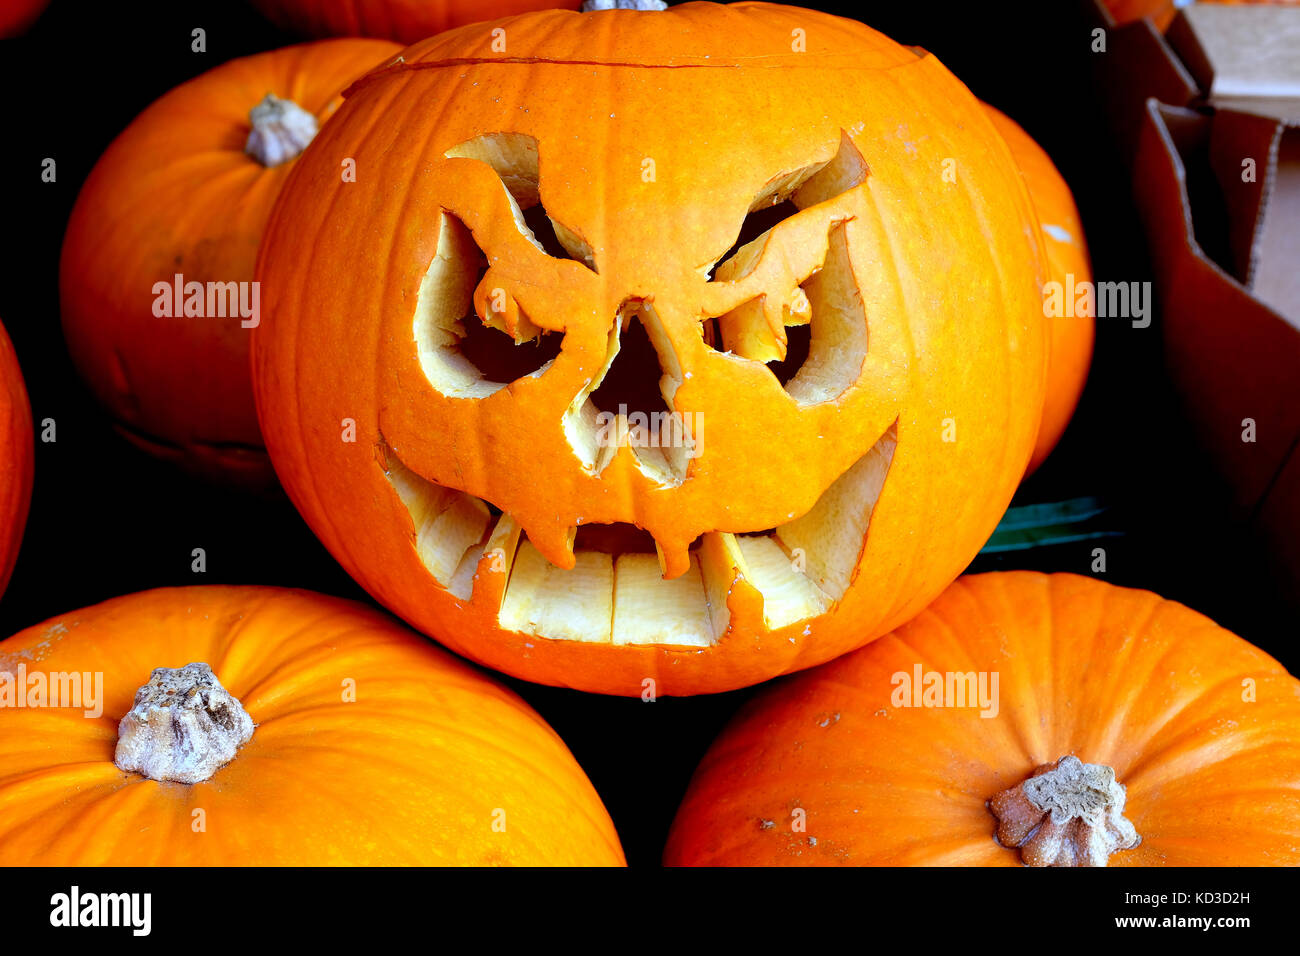 Bakewell, Derbyshire, UK. October 09, 2017. A gruesome face cut out of a pumpkin in group of pumpkins for sale outside - Stock Image